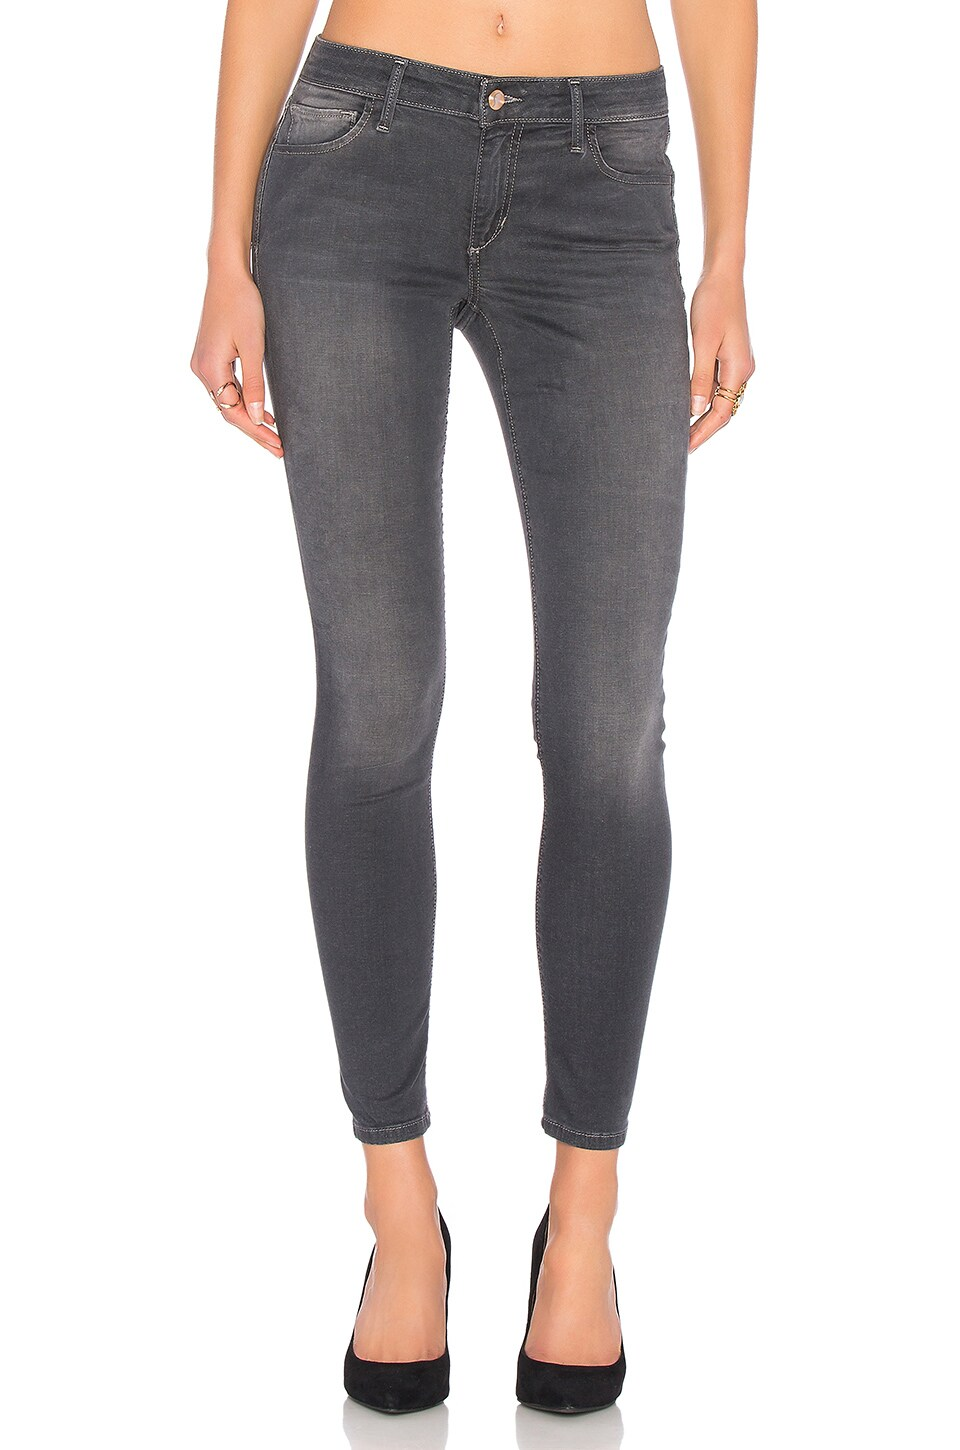 The Icon Ankle Skinny by Joe's Jeans